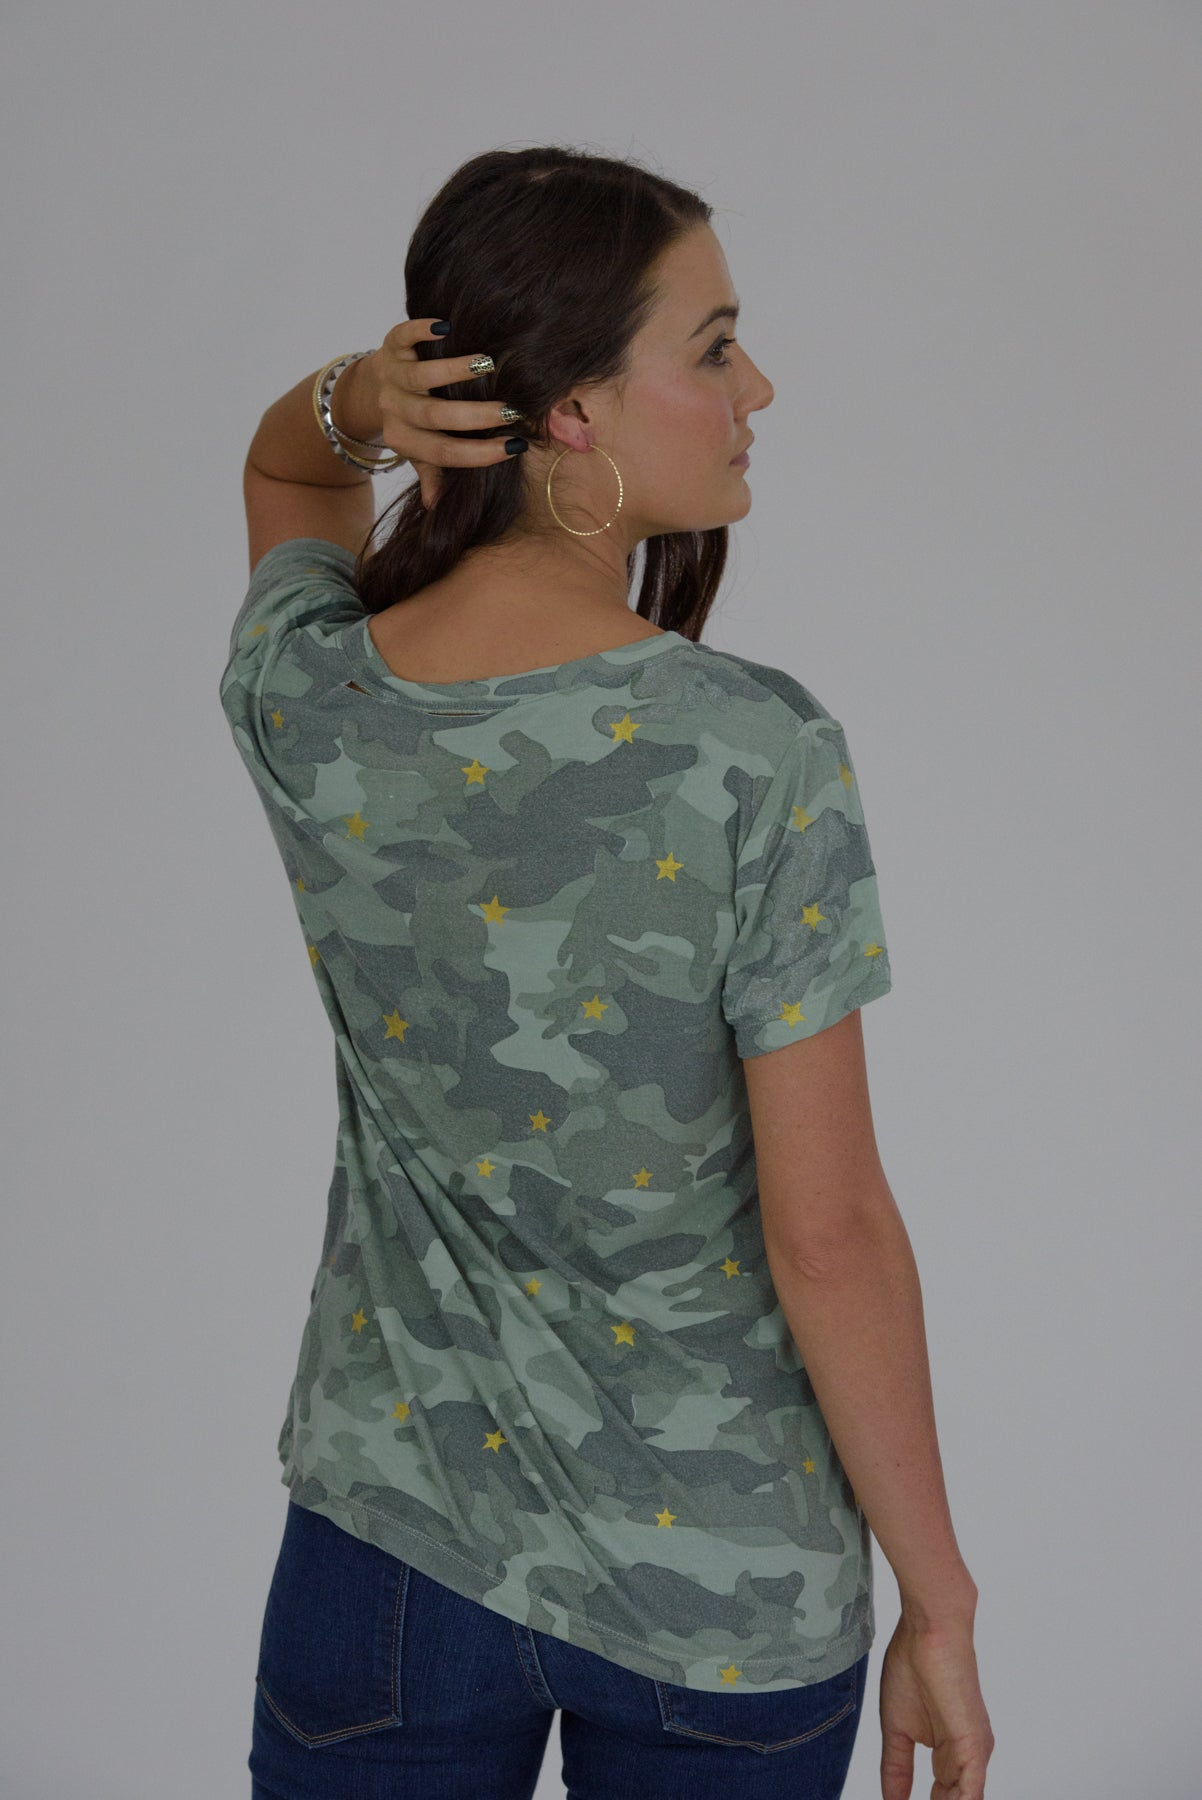 Camo Distressed Gold Stars Tee